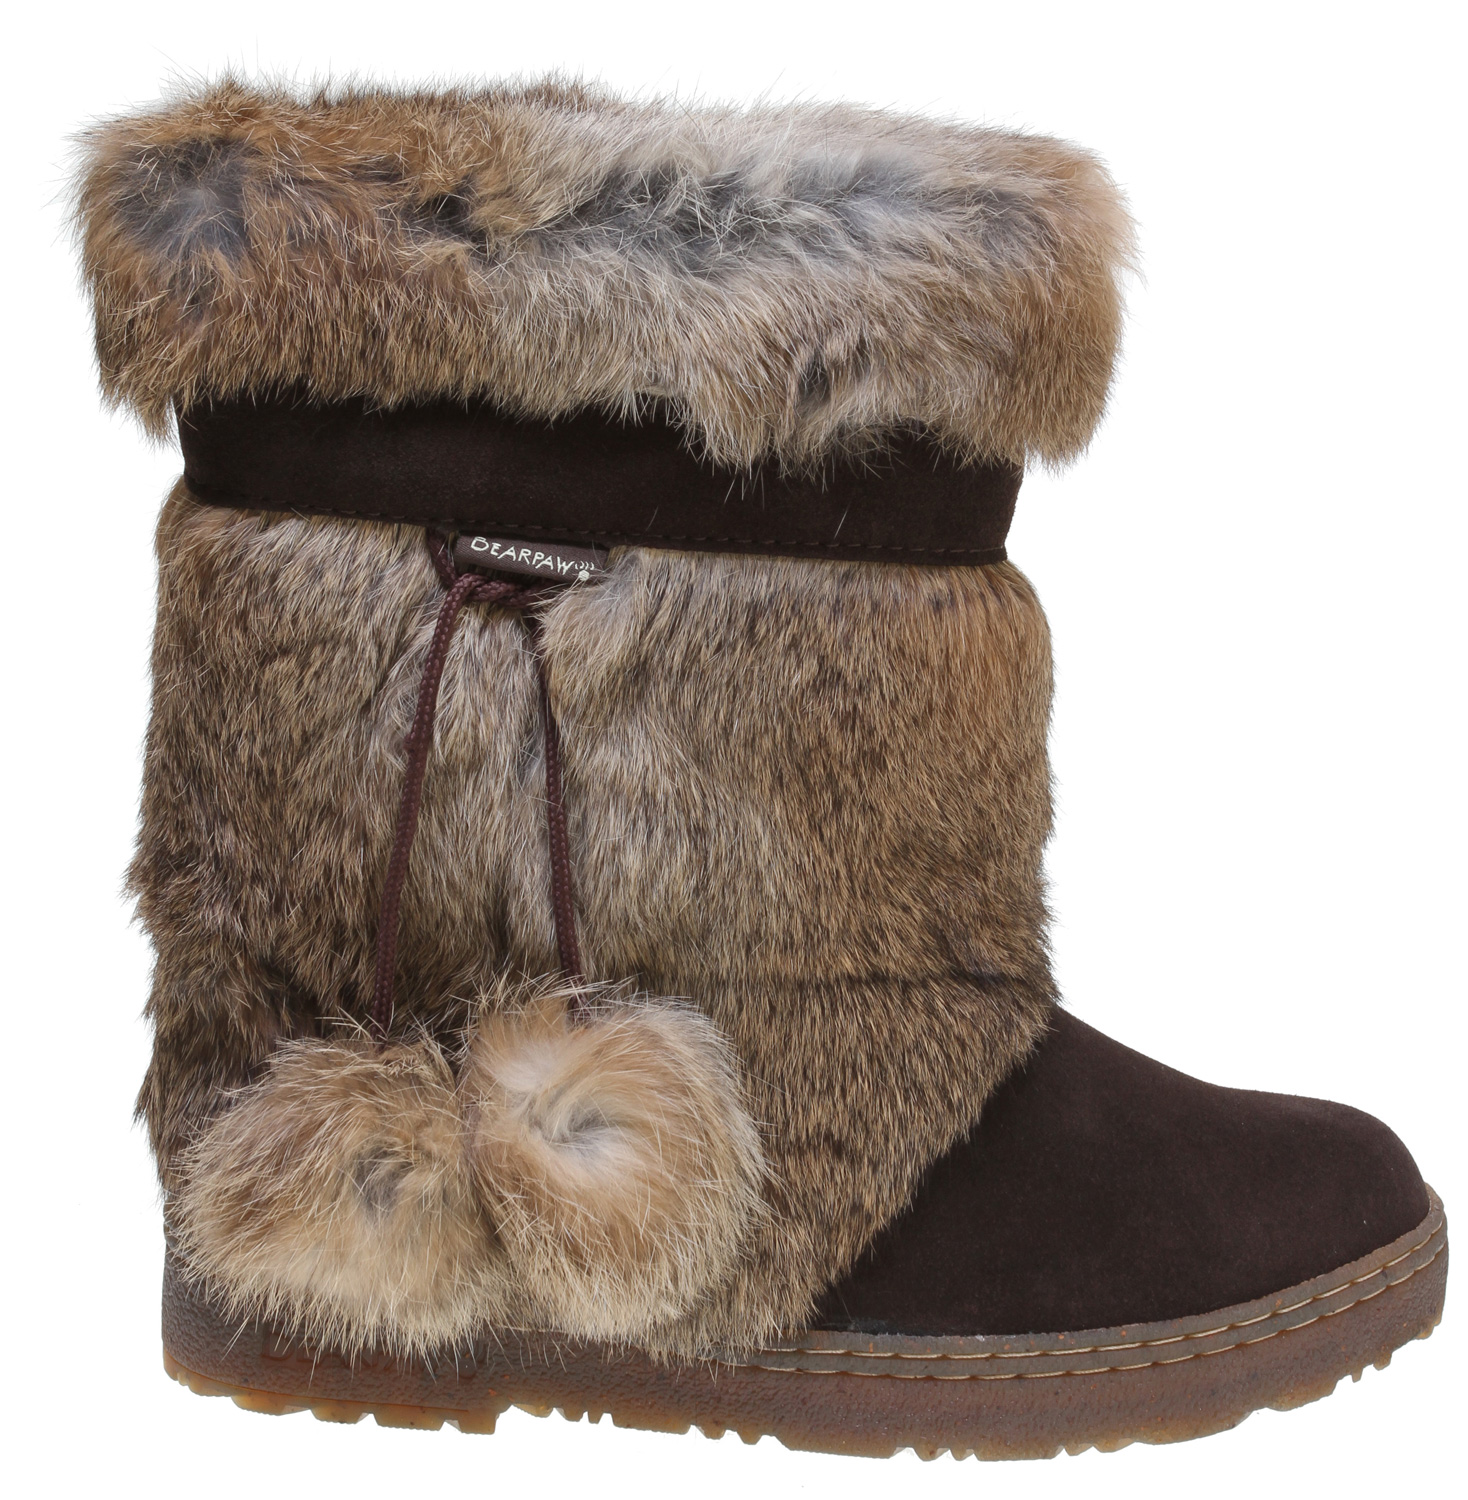 The Tama is sure to give you that extra flare, turn heads and make a statement when you wear these fluffy comforts out on the town. Look no further for groundbreaking comfort, warmth and a fashion statement.Key Features of the Bearpaw Tama II Casual Boots: Cow suede vamp Rabbit fur Branded trim and teis with pom poms 100% superwash merino wool lining Sheepskin footbed Metal heel logo - $129.99